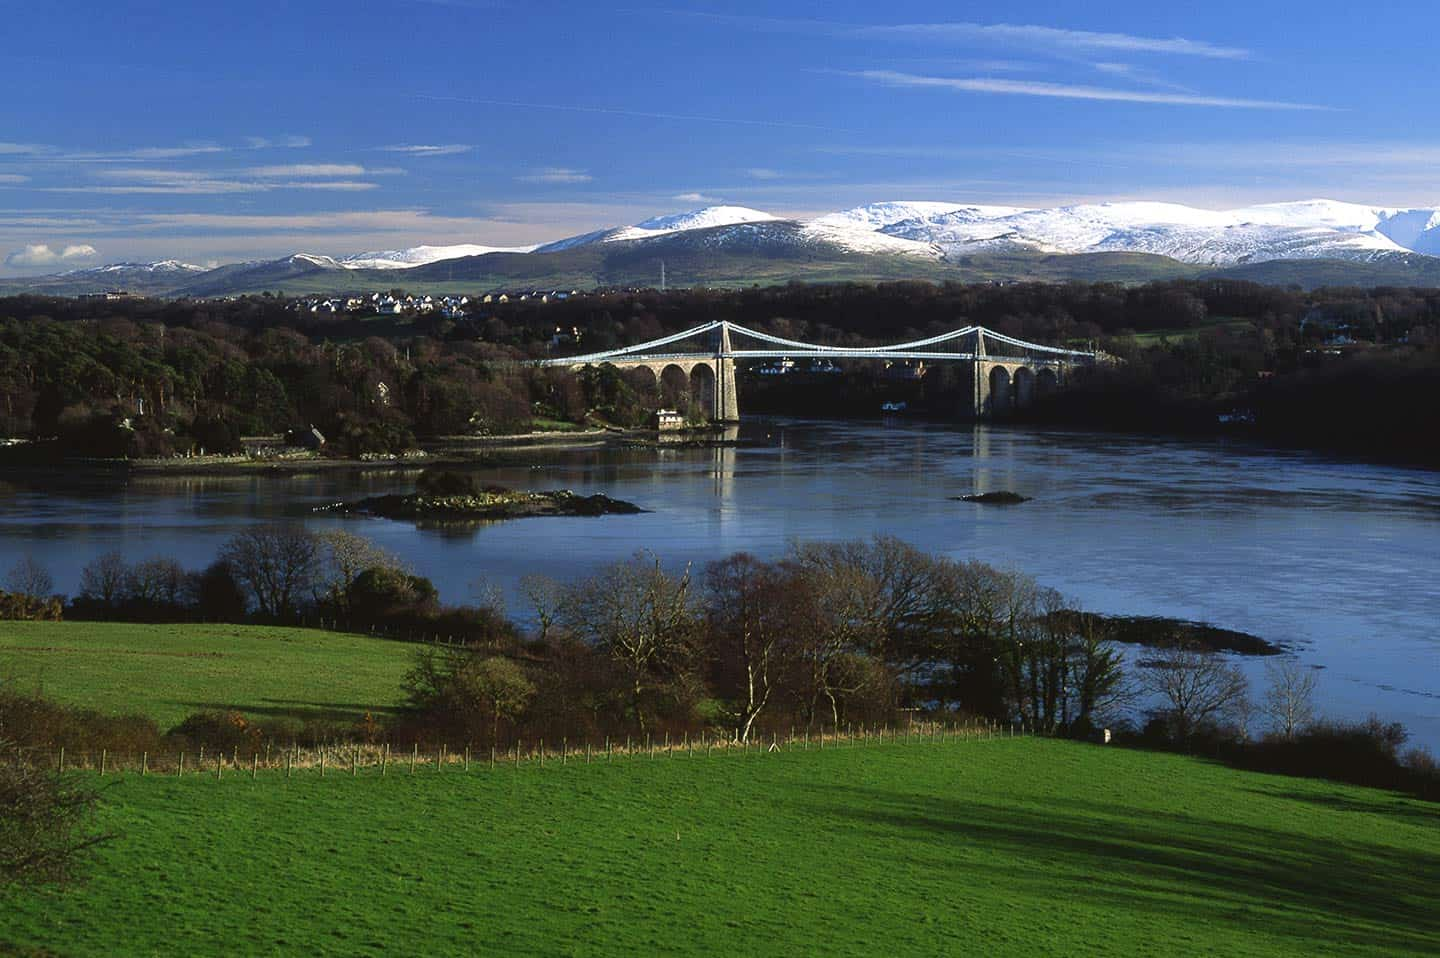 Image of the Menai Suspension Bridge between mainland Wales and Anglesey